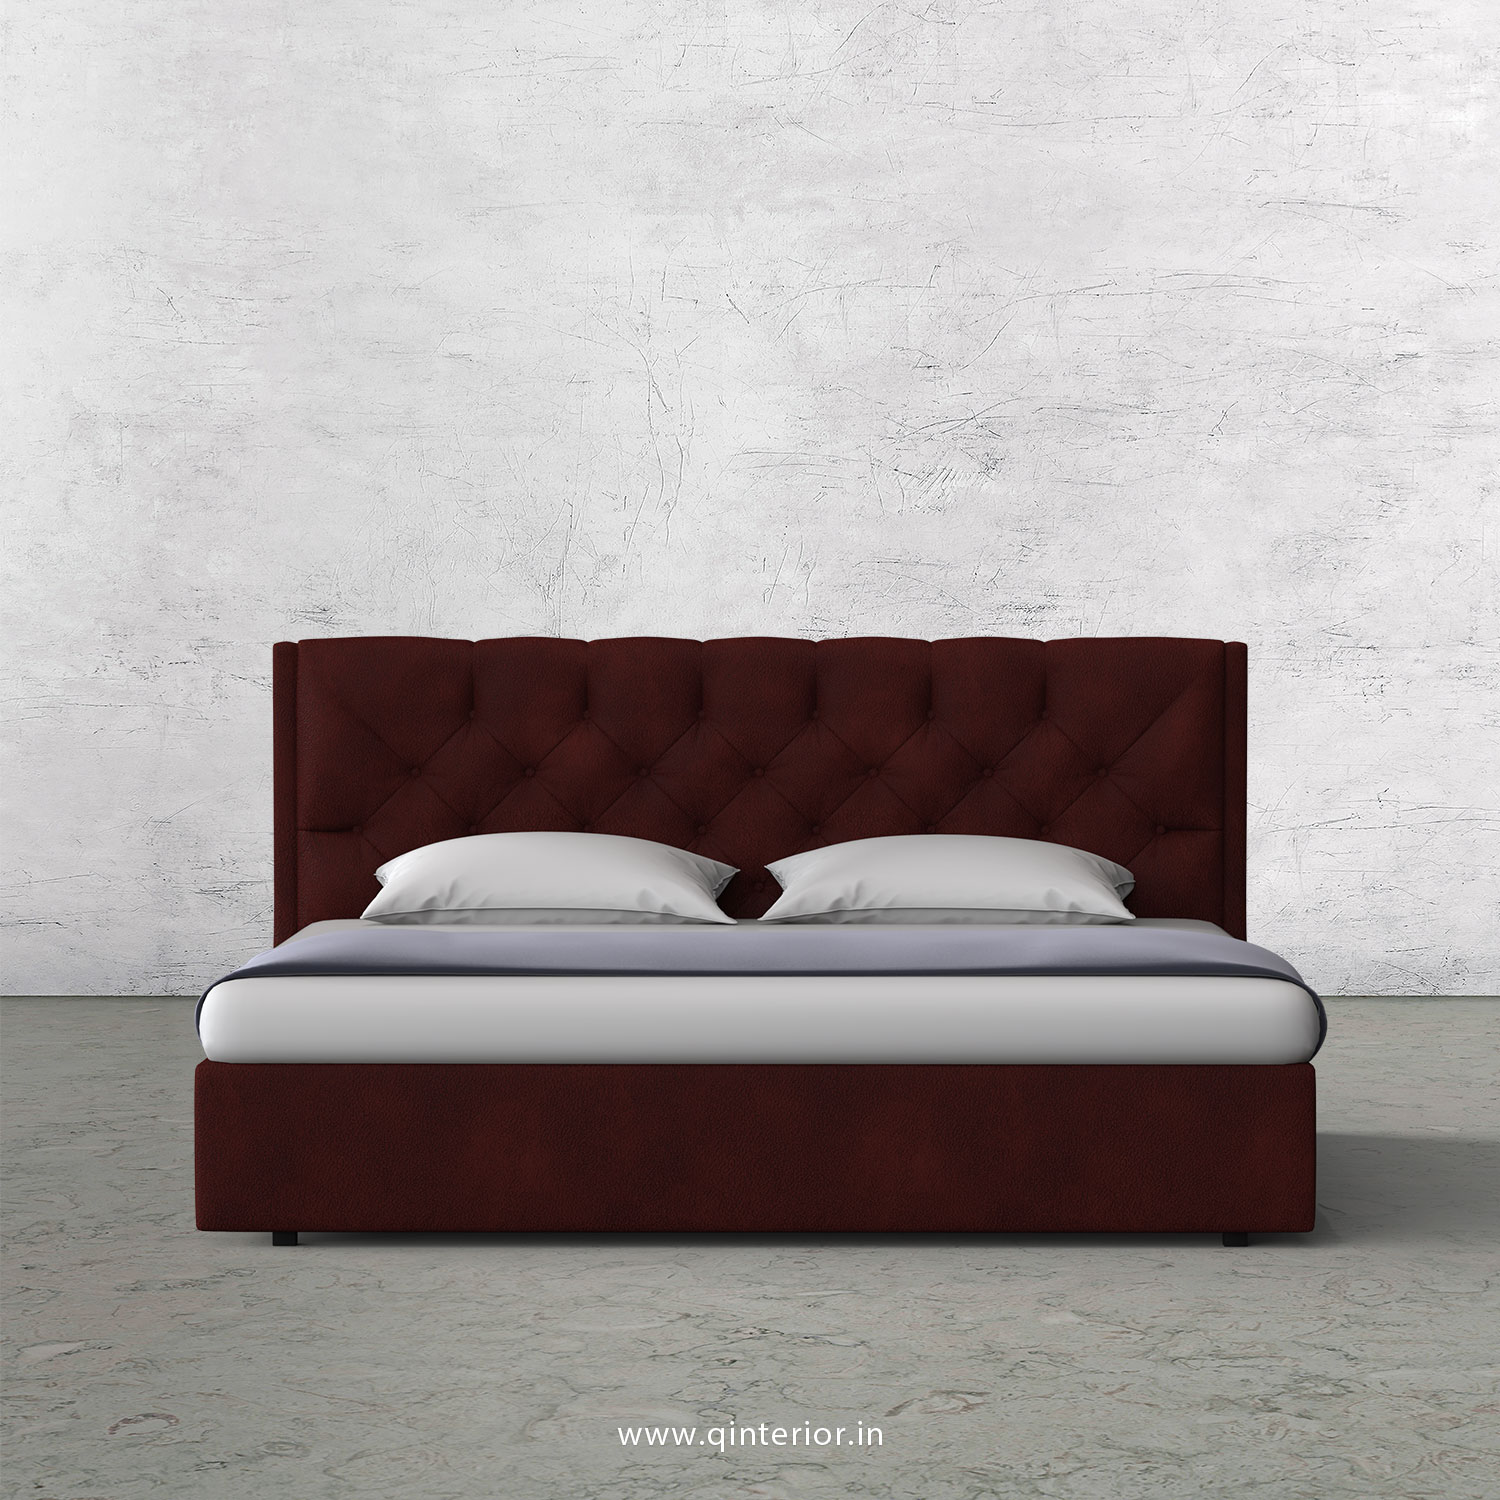 Scorpius Queen Bed in Fab Leather Fabric - QBD009 FL08